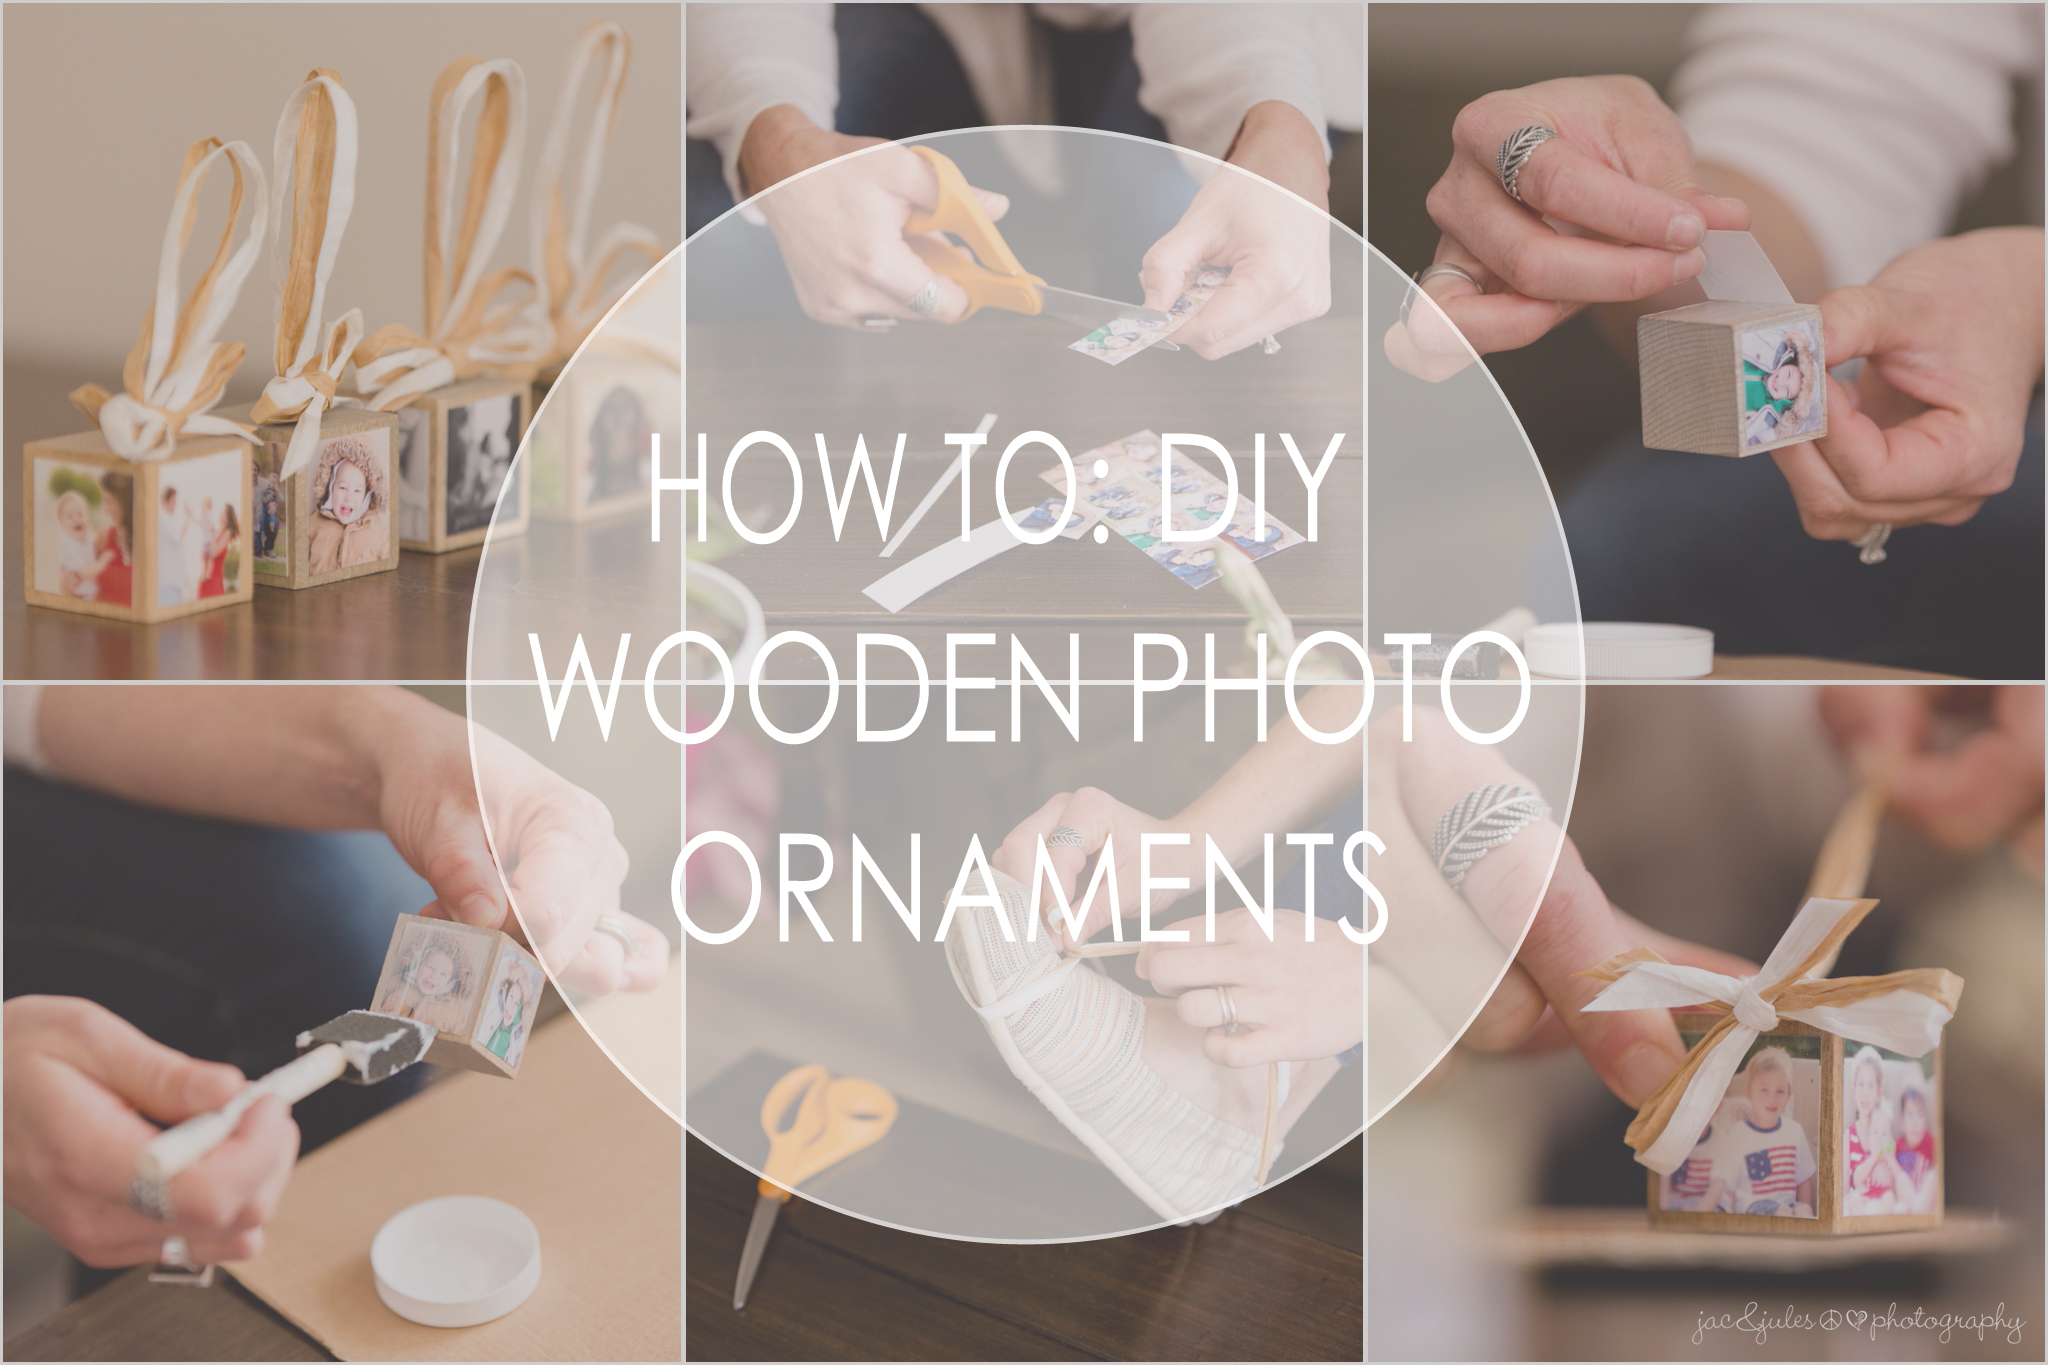 nj photographers jac&jules step-by-step tutorial for creating diy wooden photo ornaments